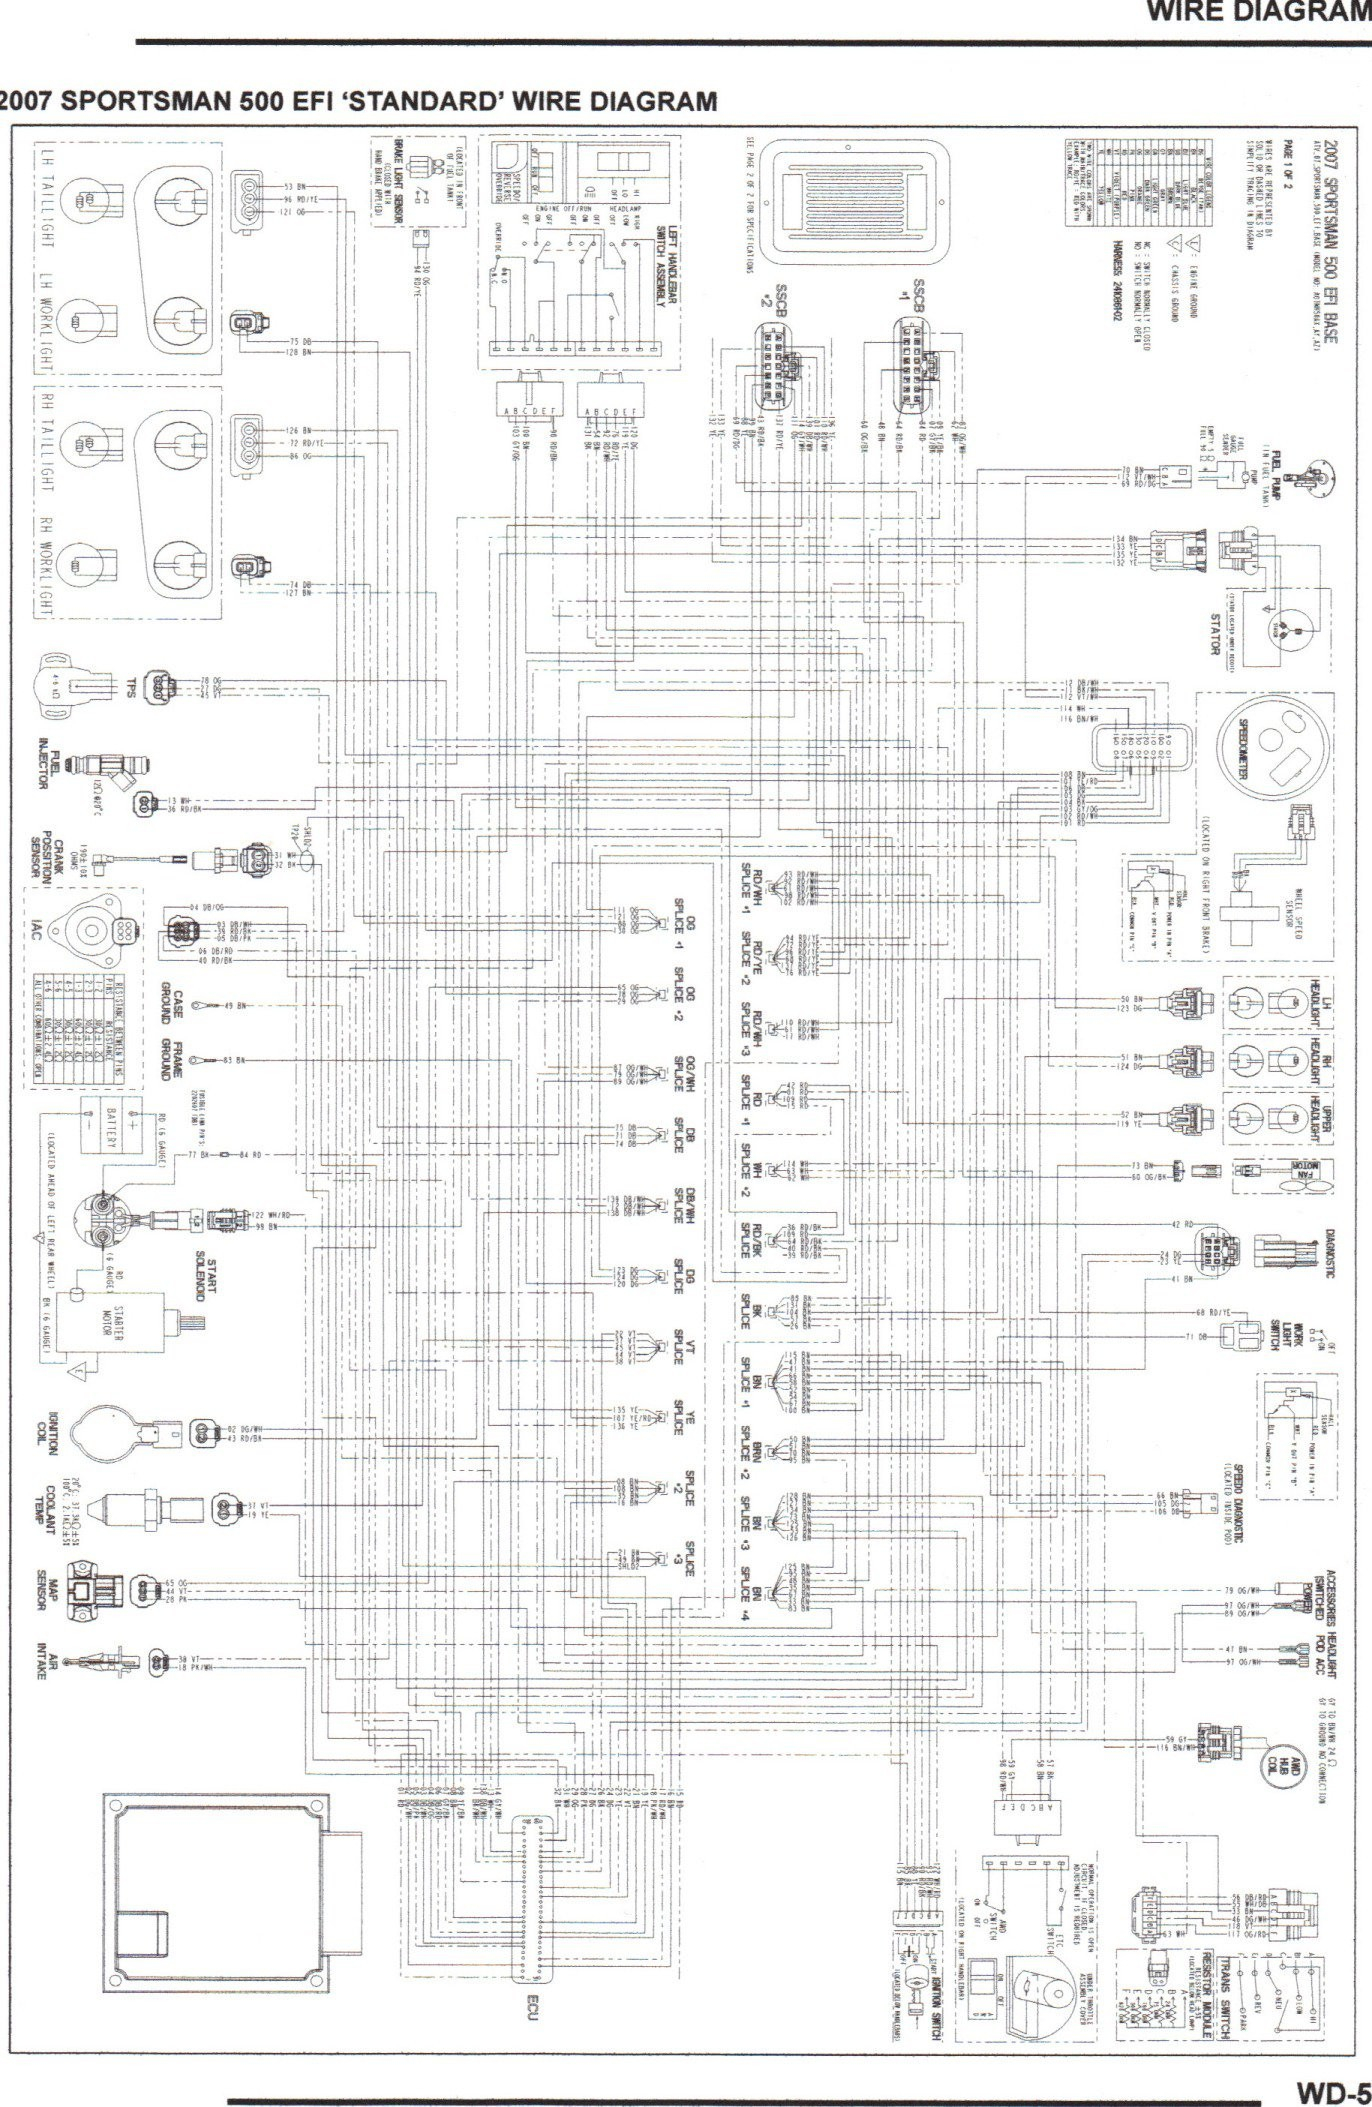 File Name: 1996 Polari Magnum 425 4x4 Wiring Diagram